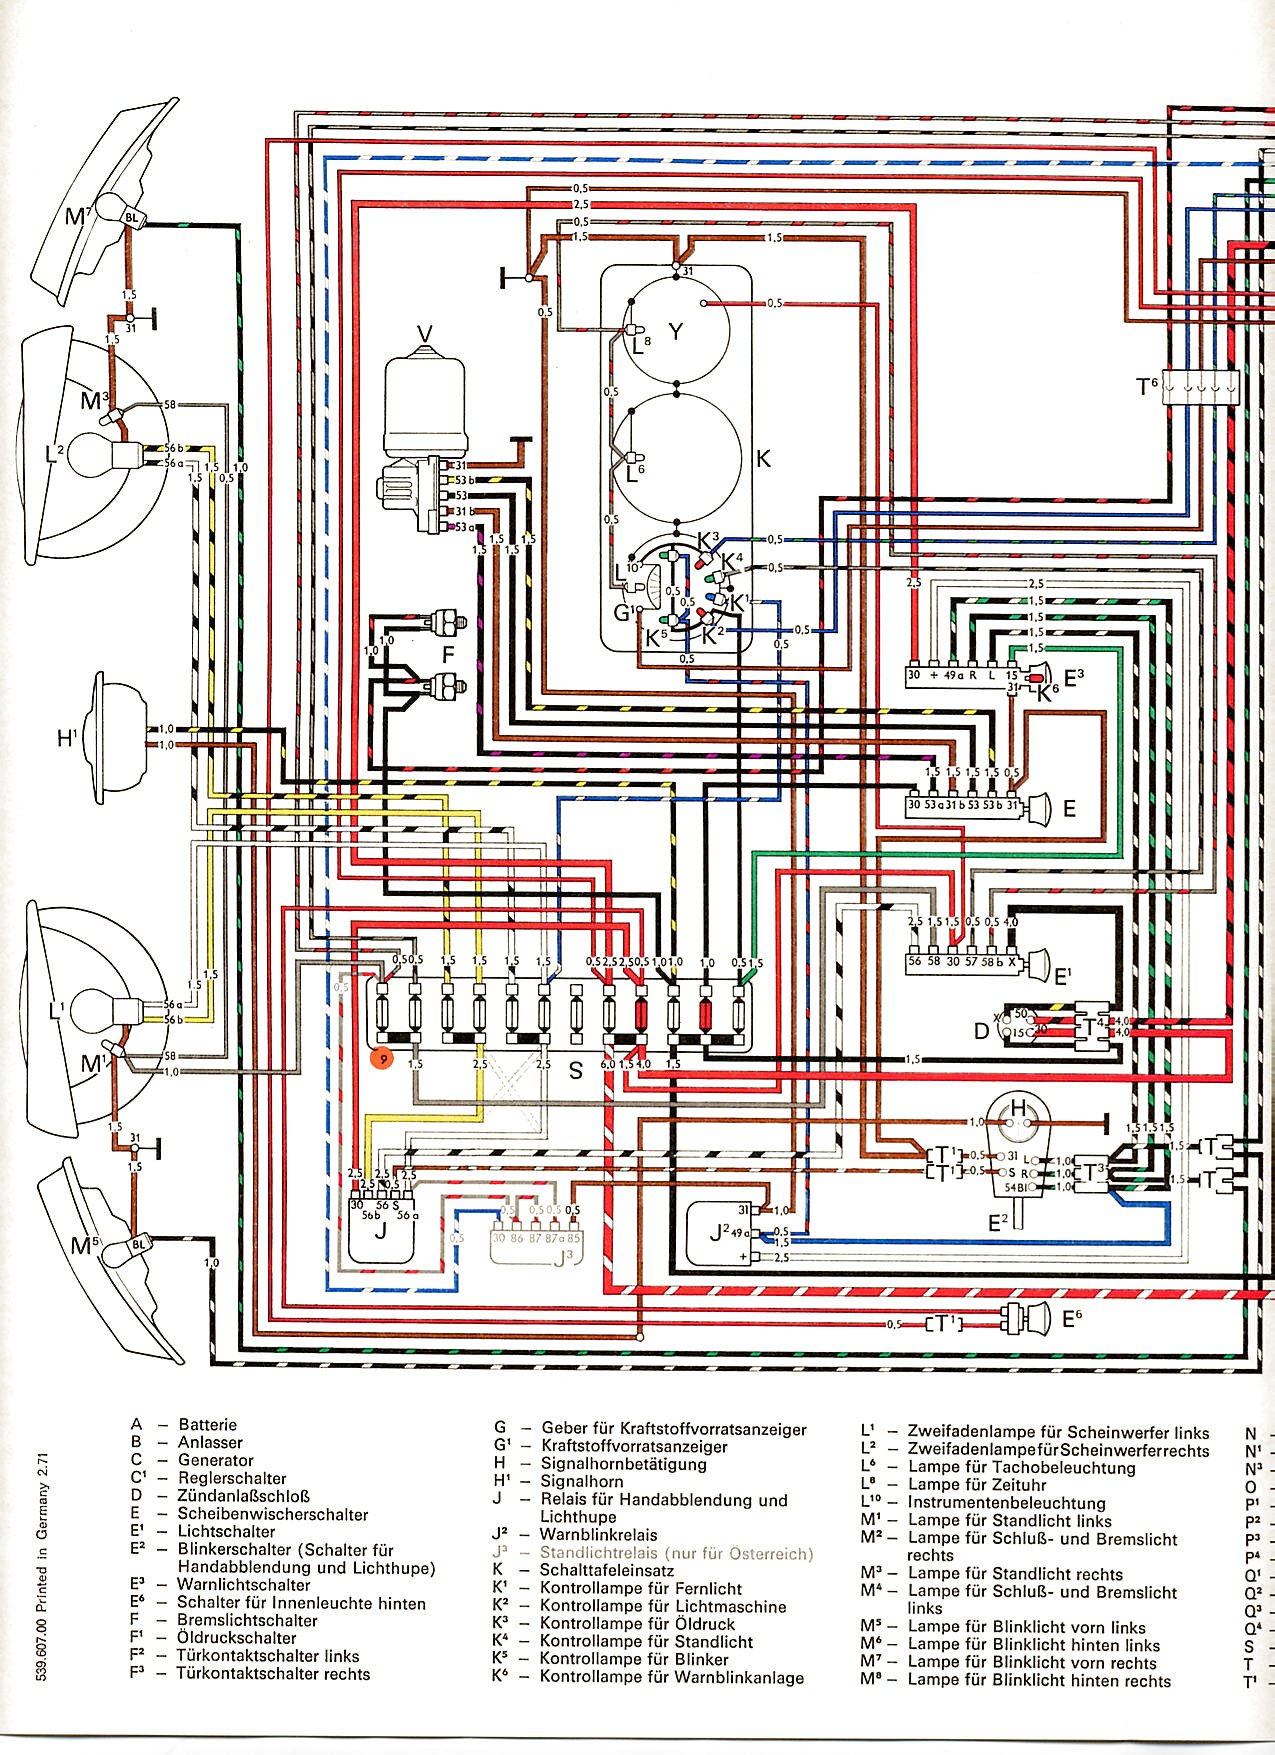 vintagebus com vw bus and other wiring diagrams rh vintagebus com School Bus Air Brake System Diagram CAN-BUS Wiring-Diagram